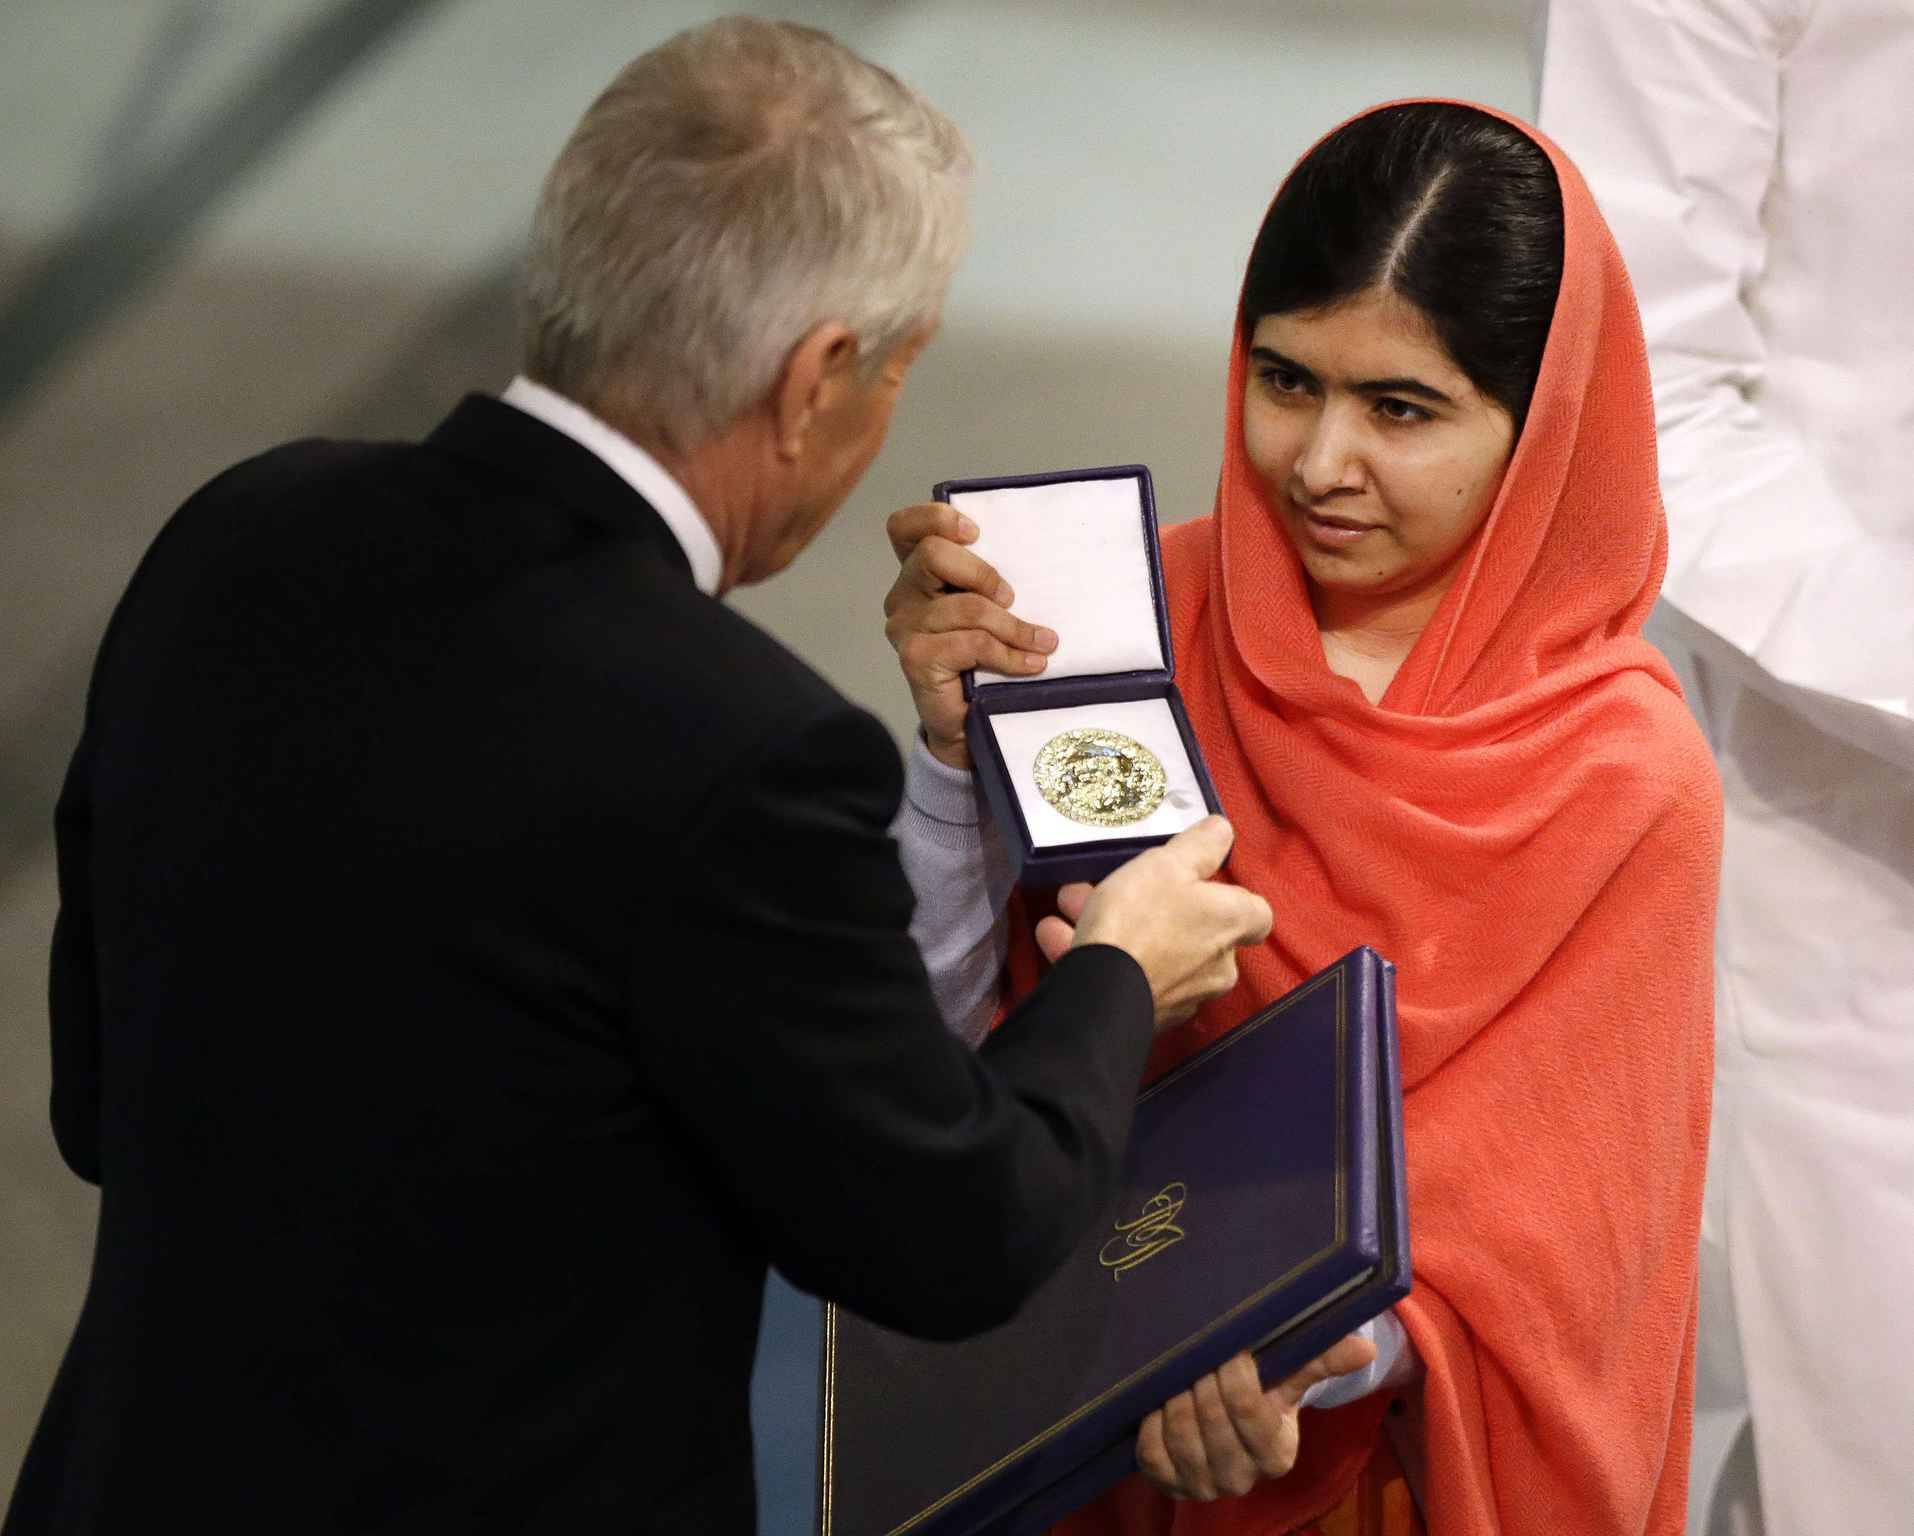 le prix nobel de la paix remis malala et l 39 indien satyarthi. Black Bedroom Furniture Sets. Home Design Ideas